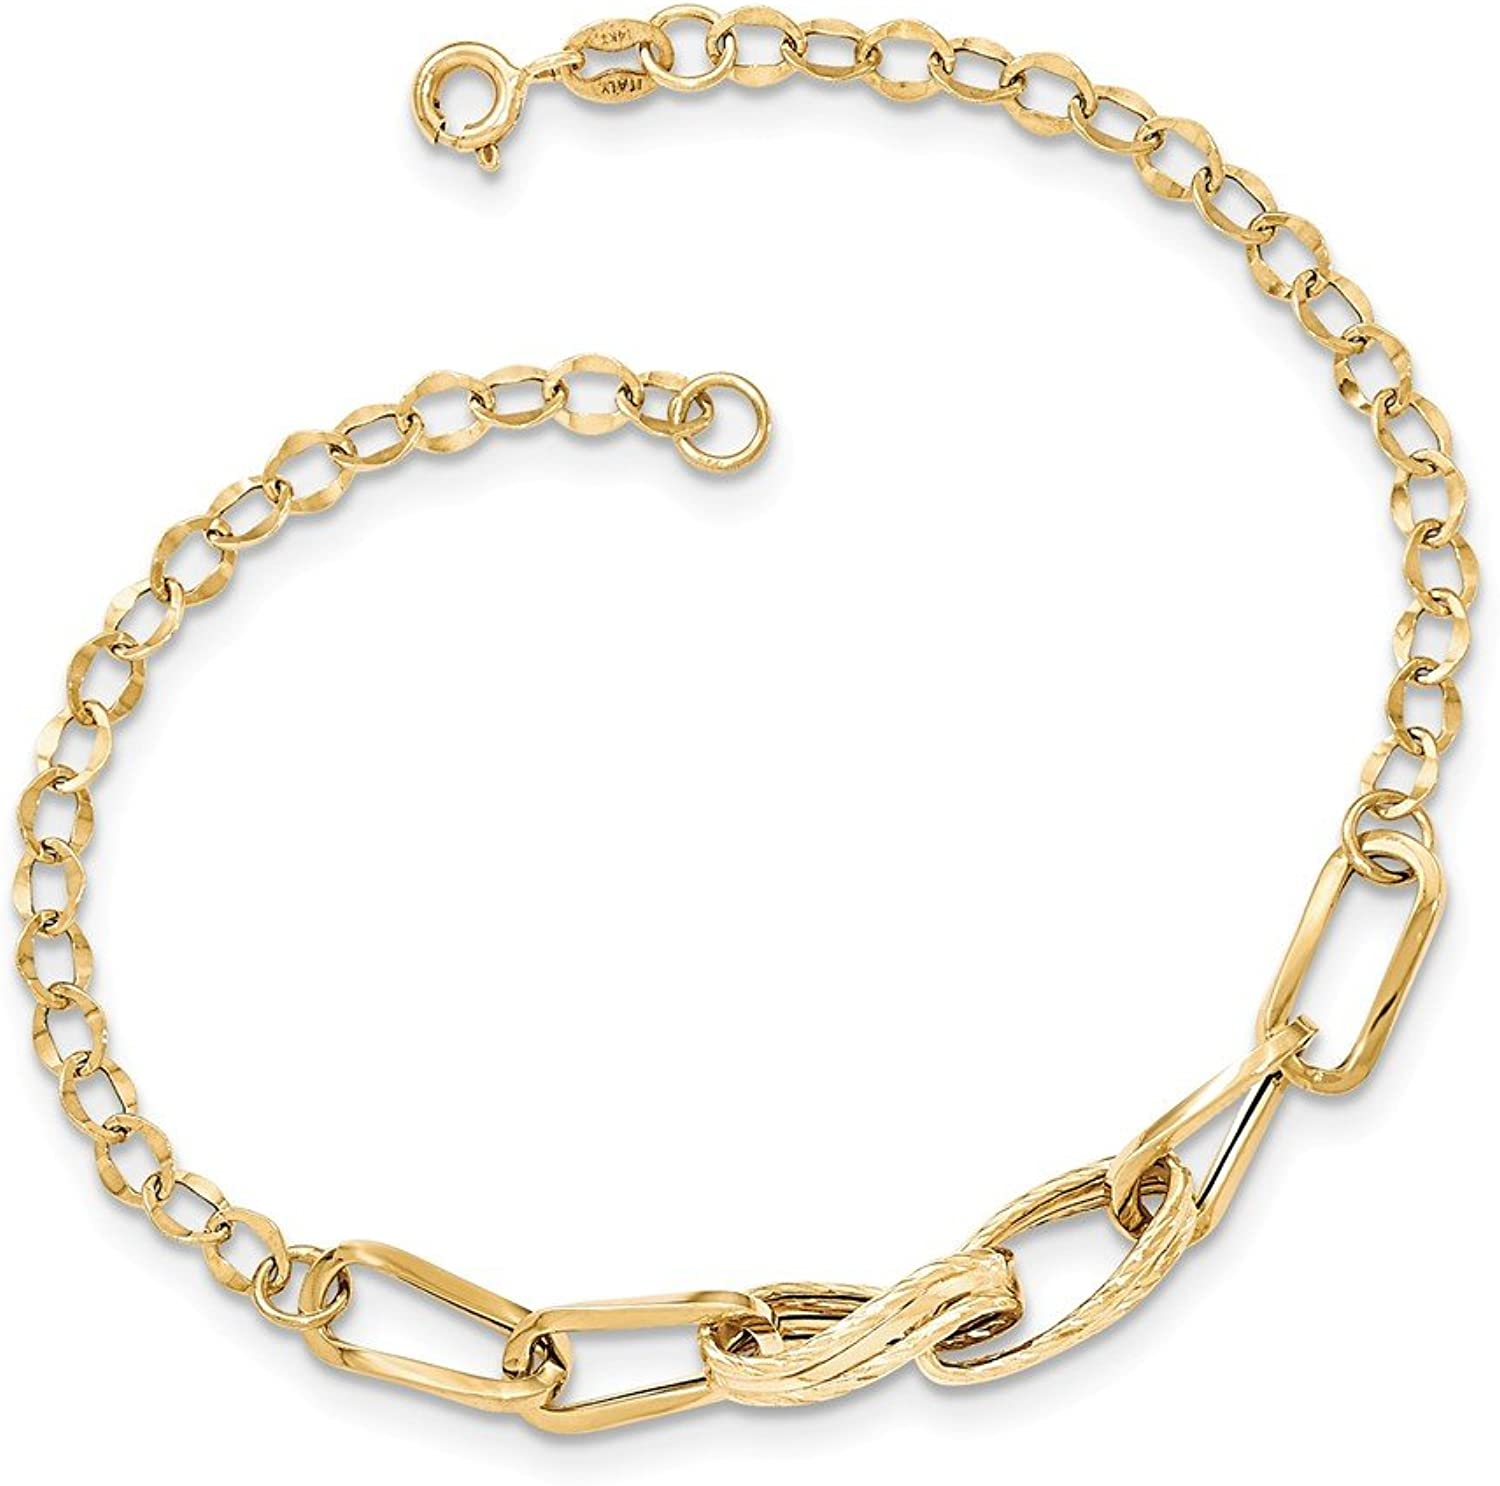 Beautiful Yellow gold 14K Yellowgold 14k gold Polished Textured Fancy Link Bracelet